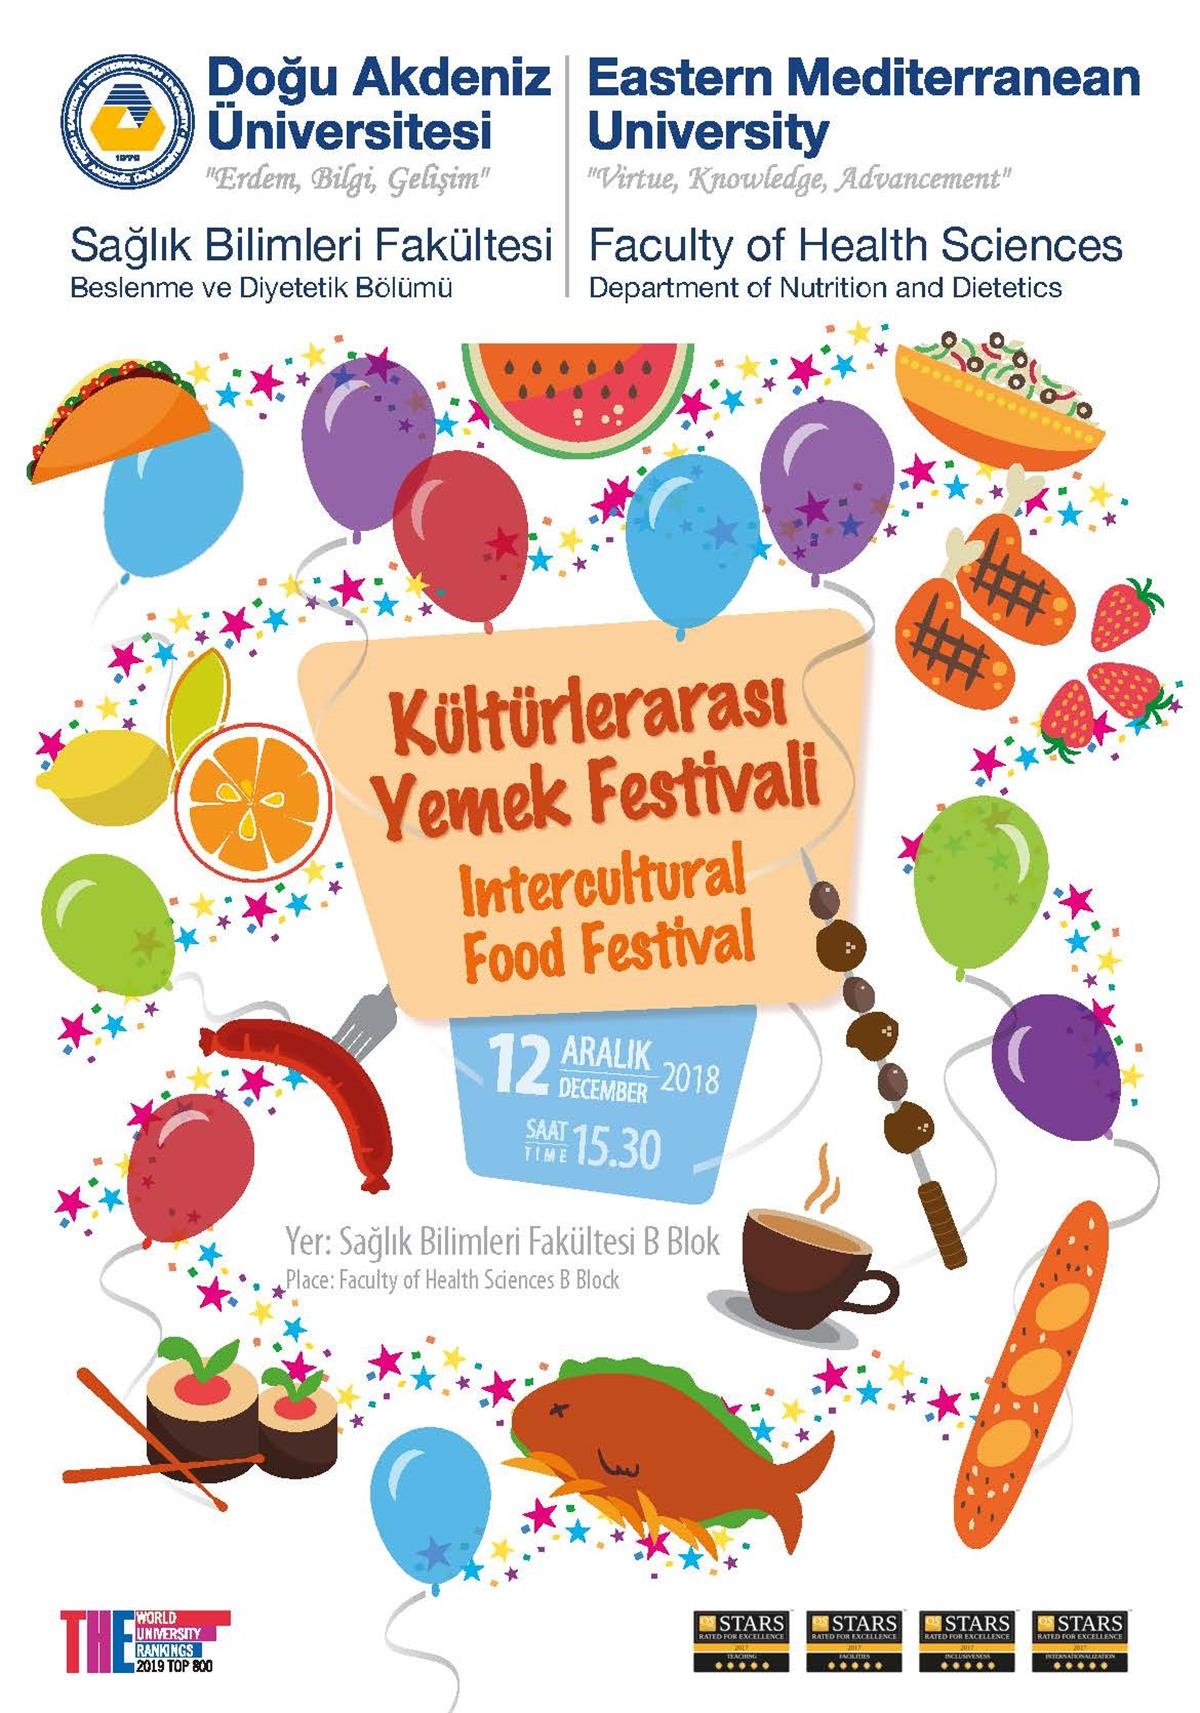 Intercultural Food Festival